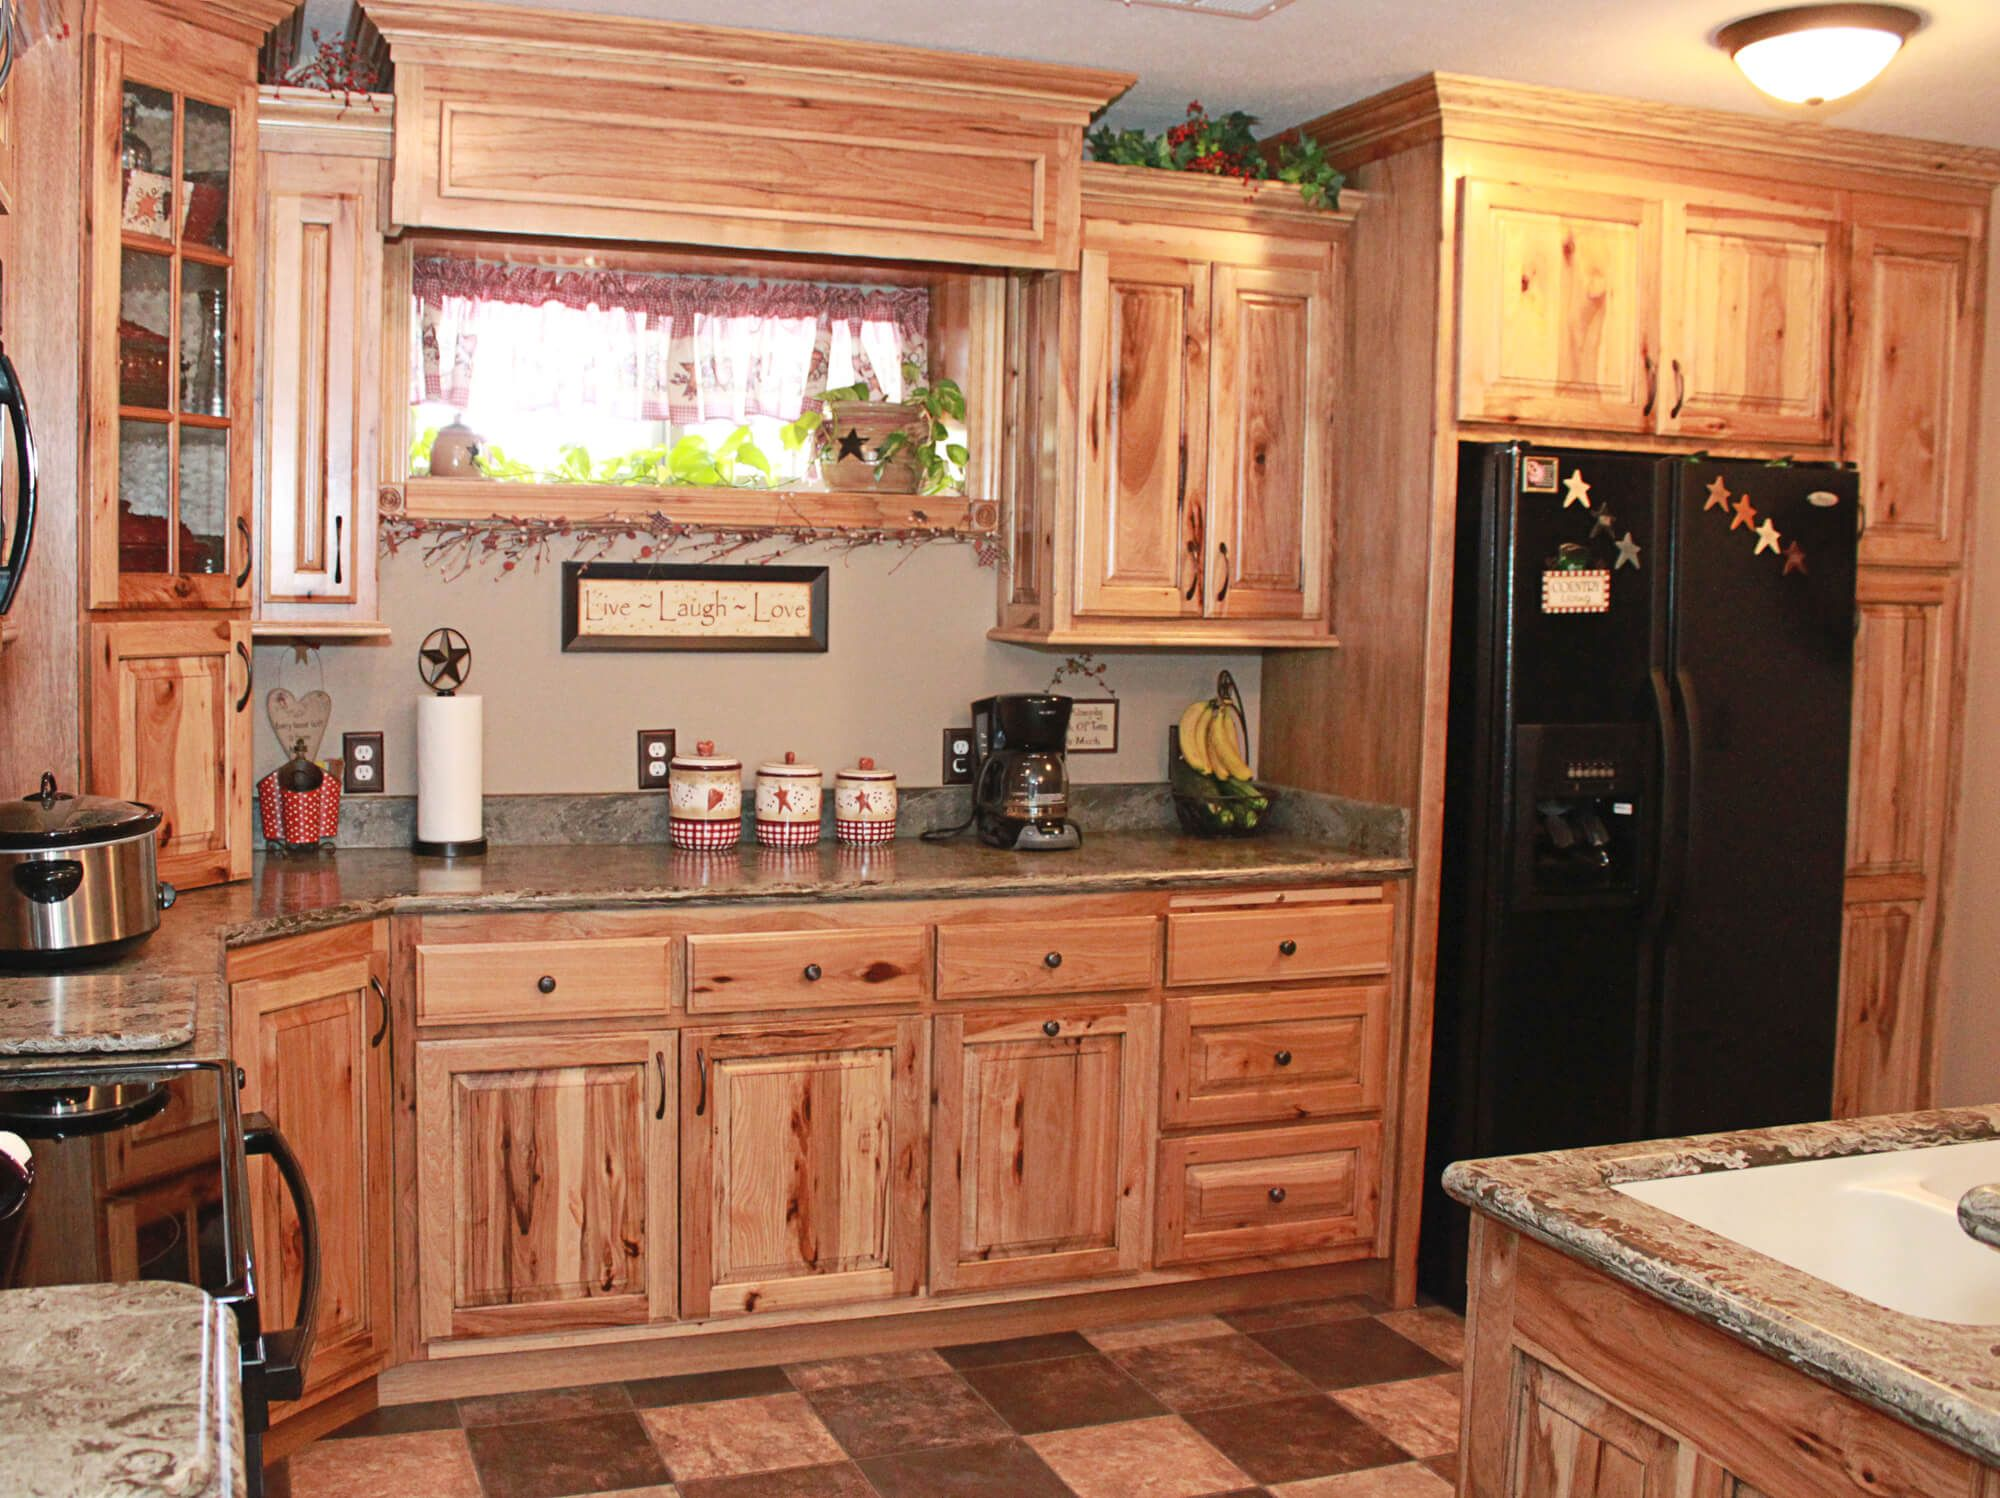 Best 15 Rustic Kitchen Cabinet Ideas For Your Lovely Nest 400 x 300